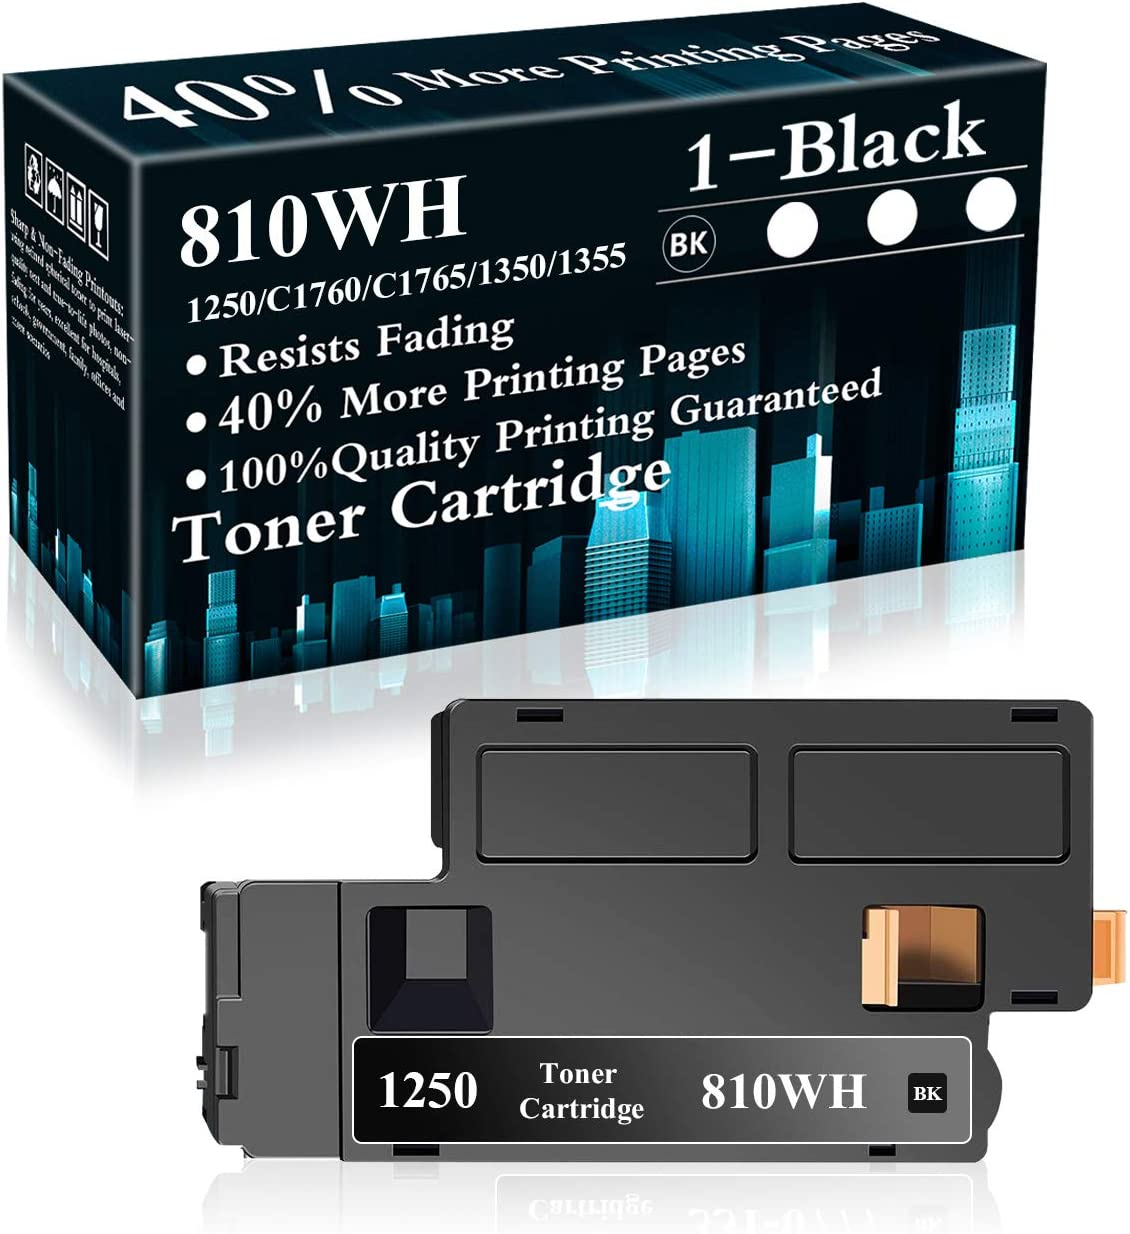 1 Black 810WH Toner Cartridge Replacement for Dell 1250c C1760nw C1765nfw C1765nf 1350cnw 1355cn 1355cnw Printer,Sold by TopInk